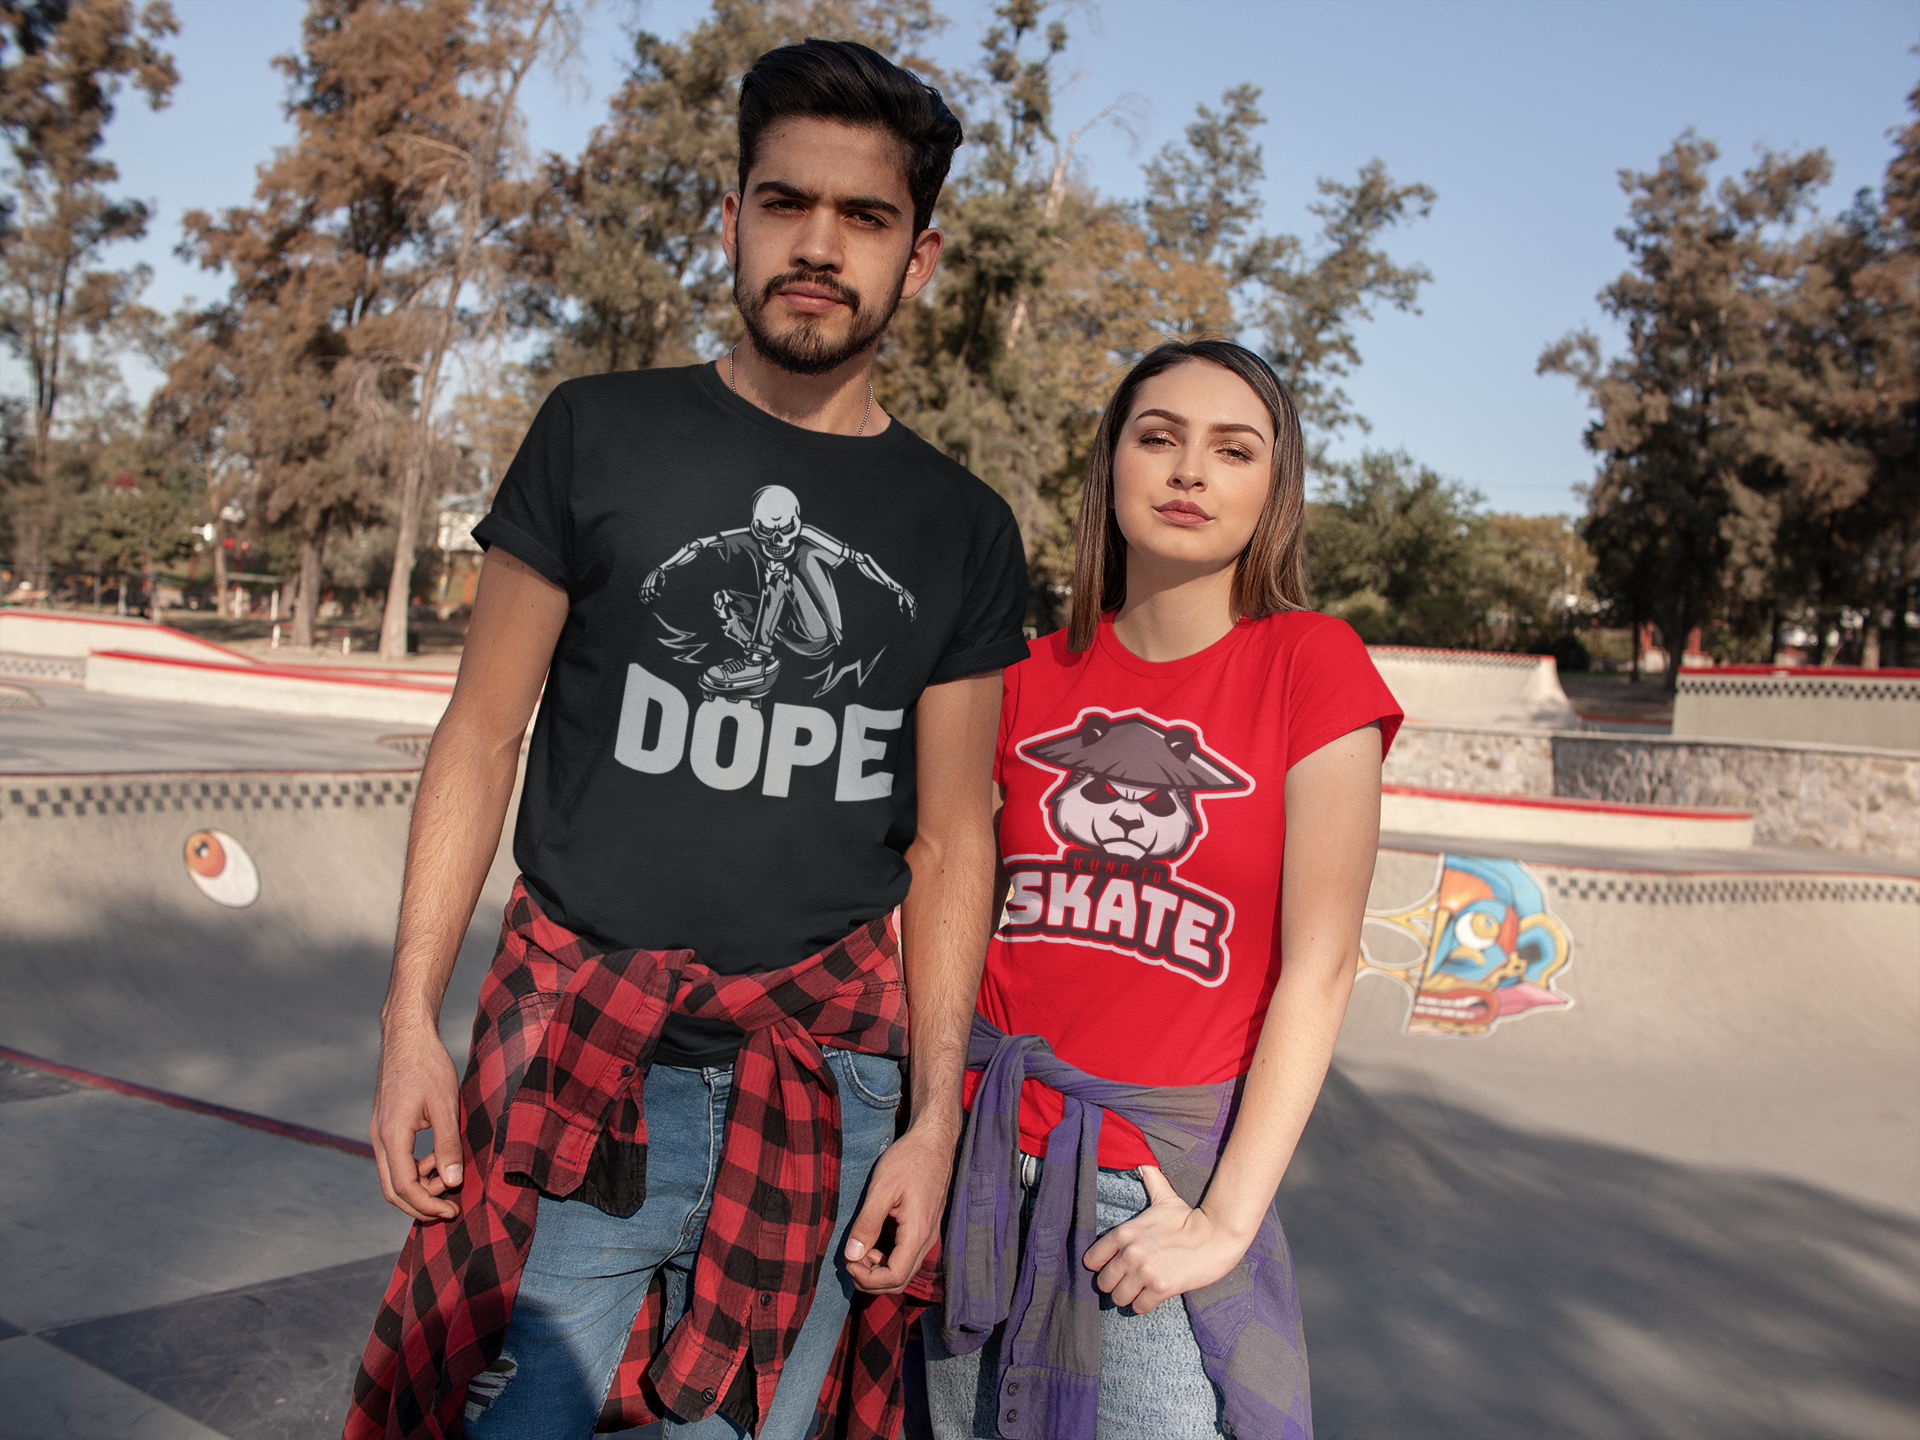 t-shirt-mockup-of-a-couple-at-an-outdoor